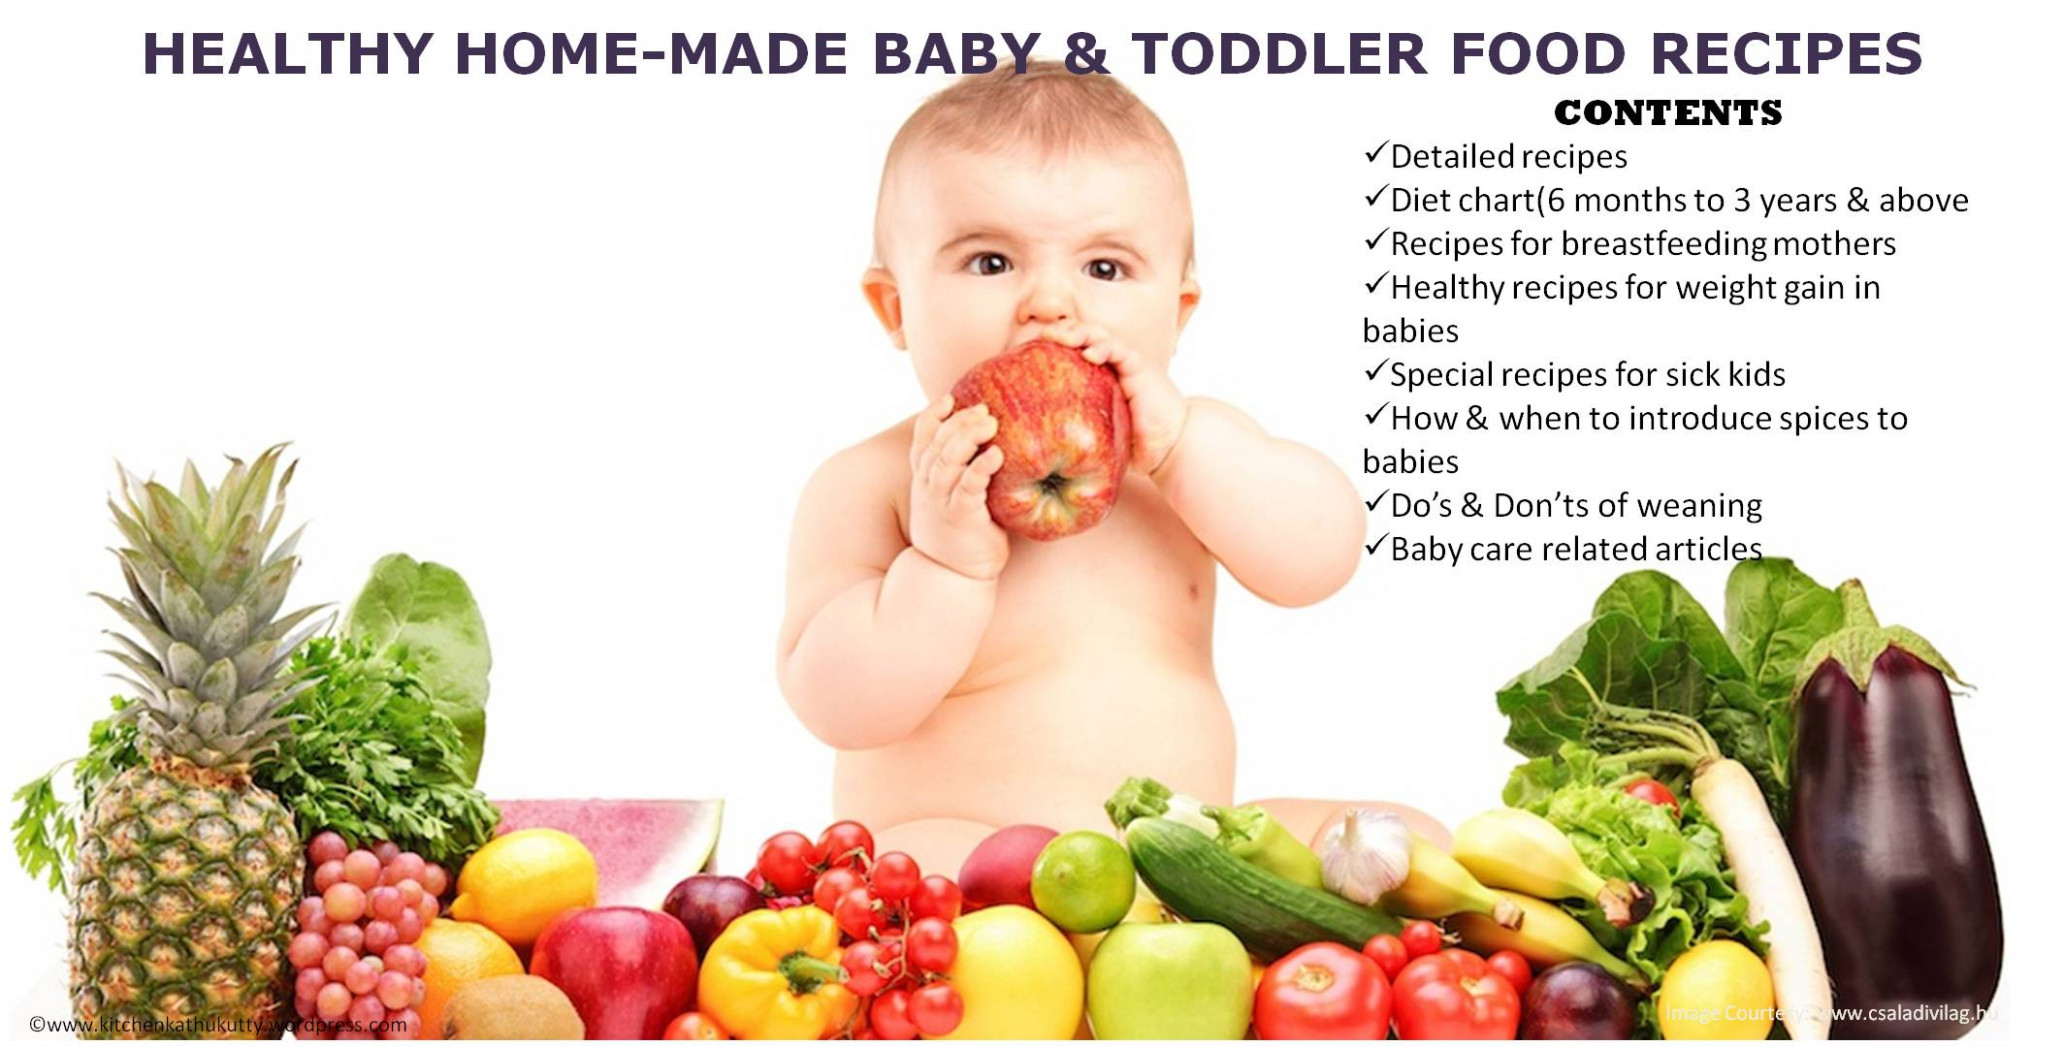 BABY & TODDLER FOOD RECIPES - KITCHEN KATHUKUTTY - recipes to eat healthy